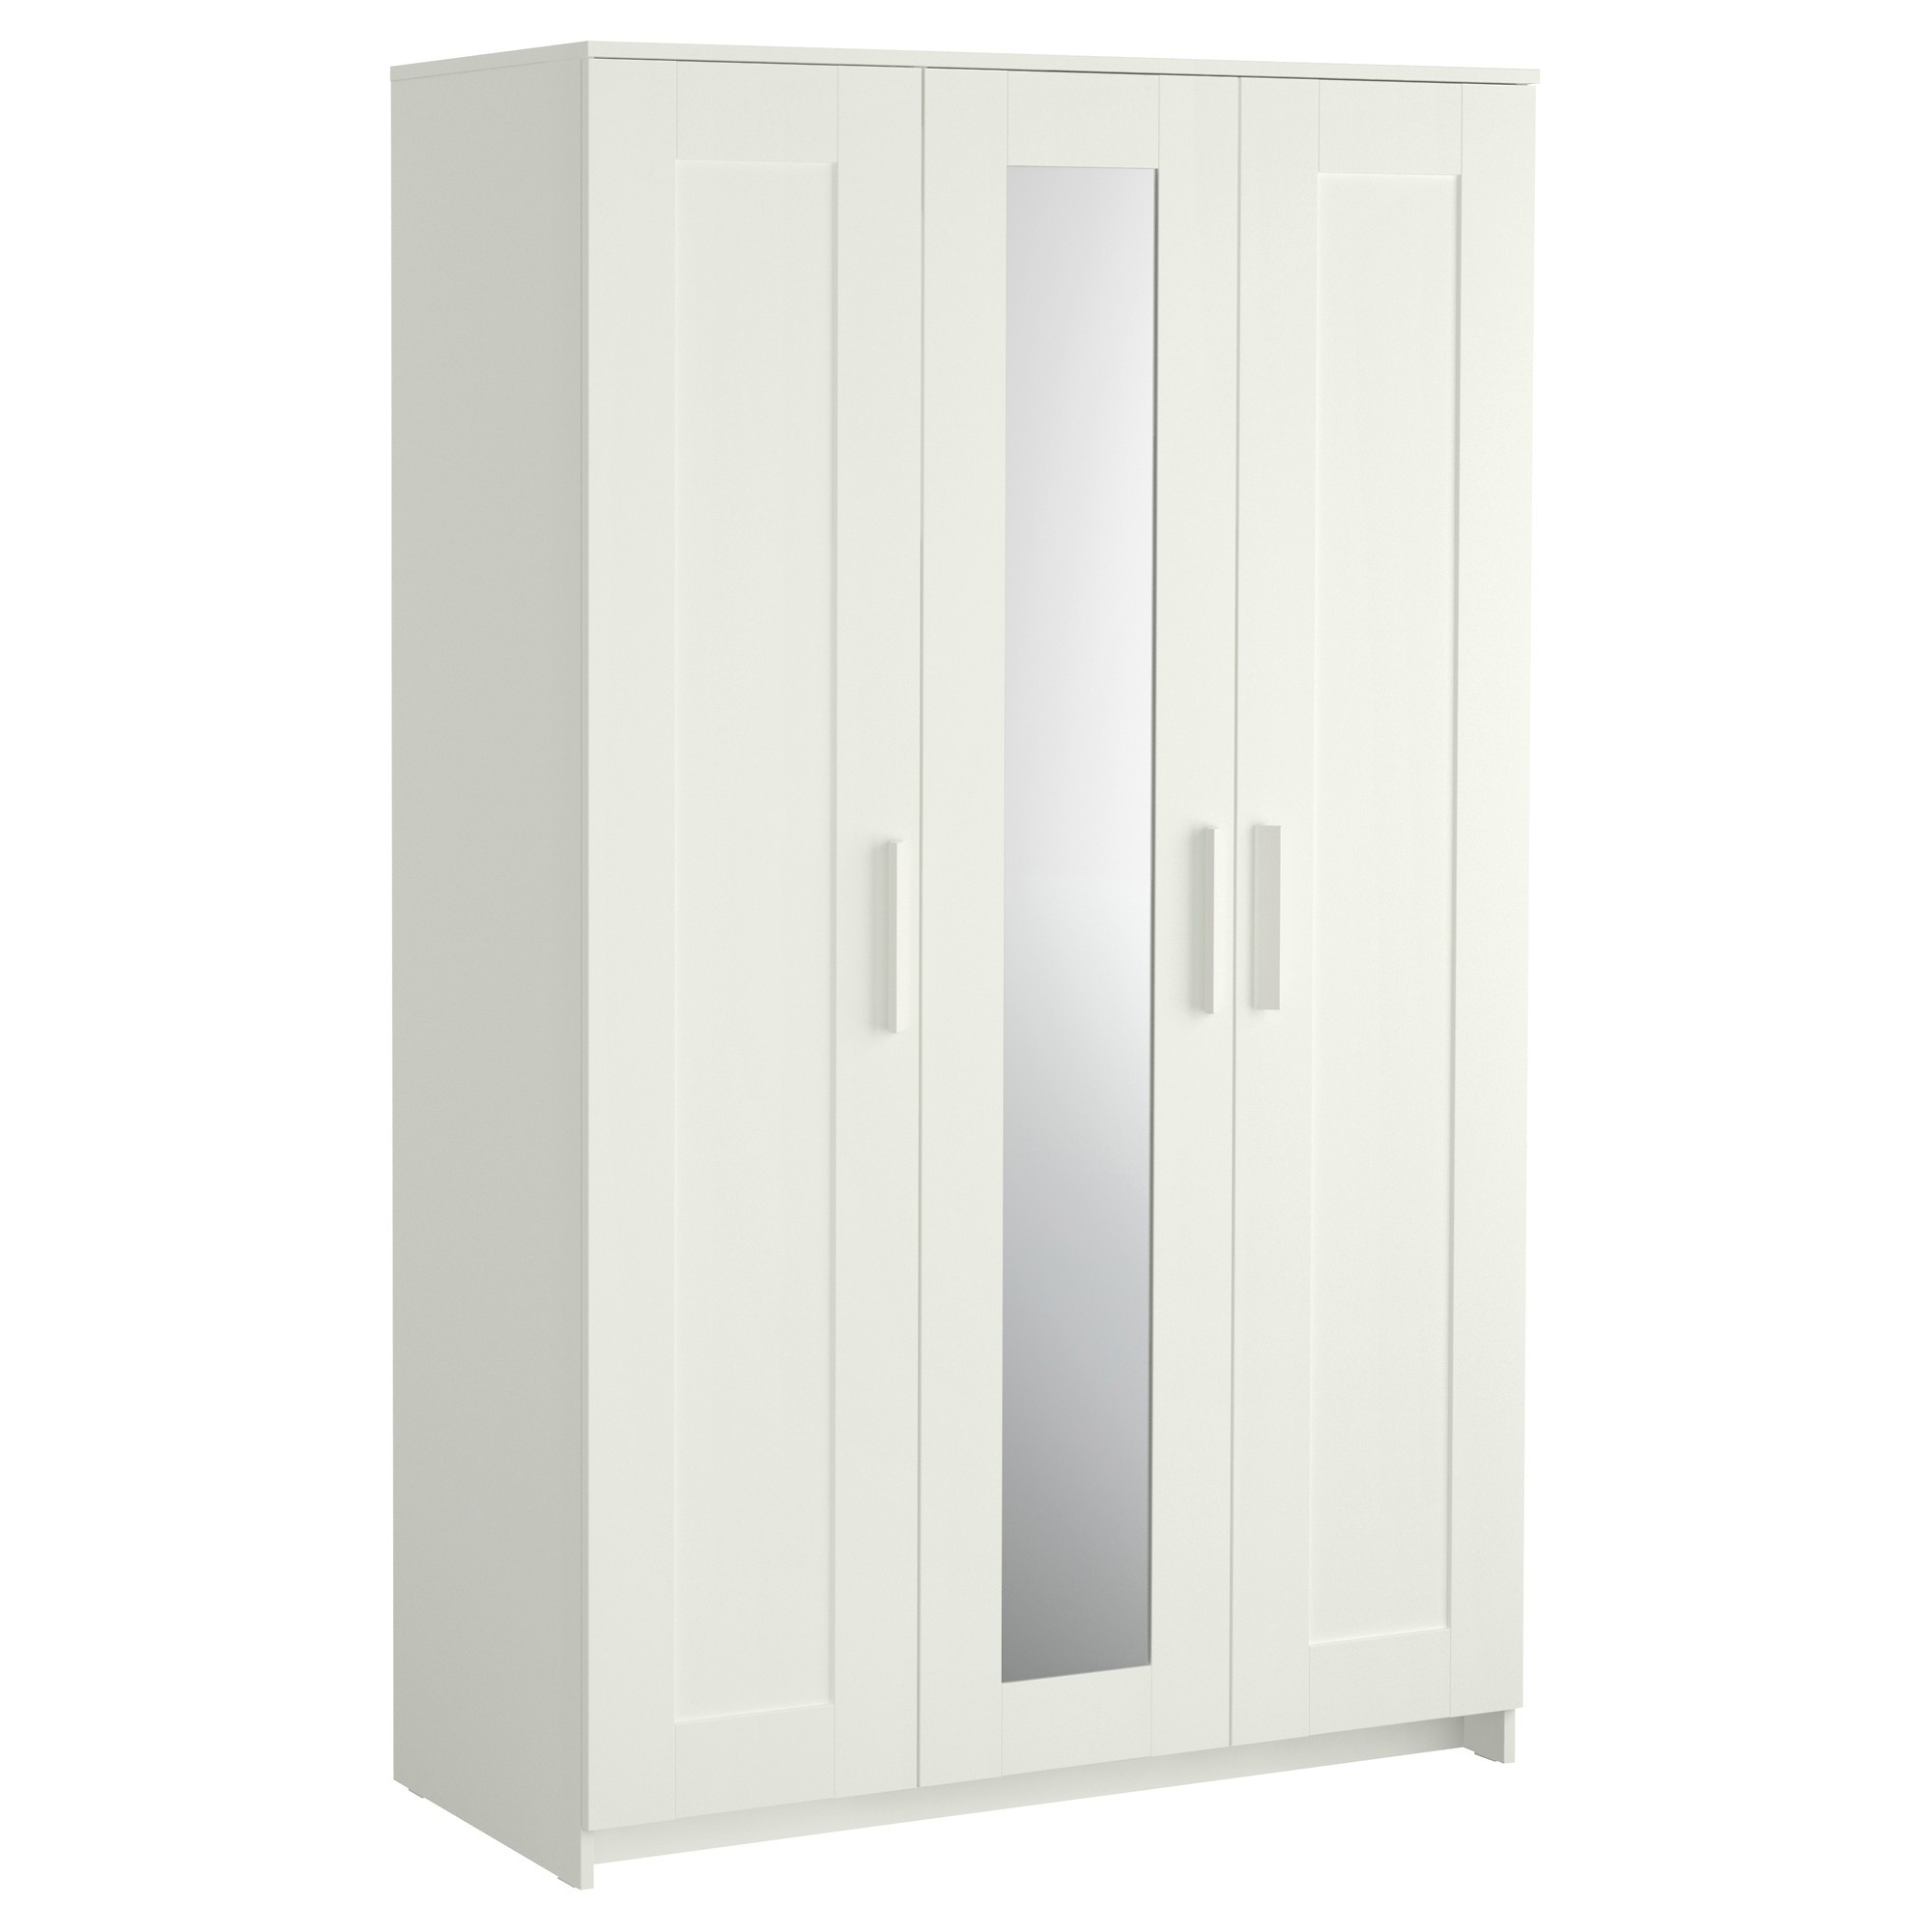 armoire blanche portes coulissantes ikea armoire id es. Black Bedroom Furniture Sets. Home Design Ideas